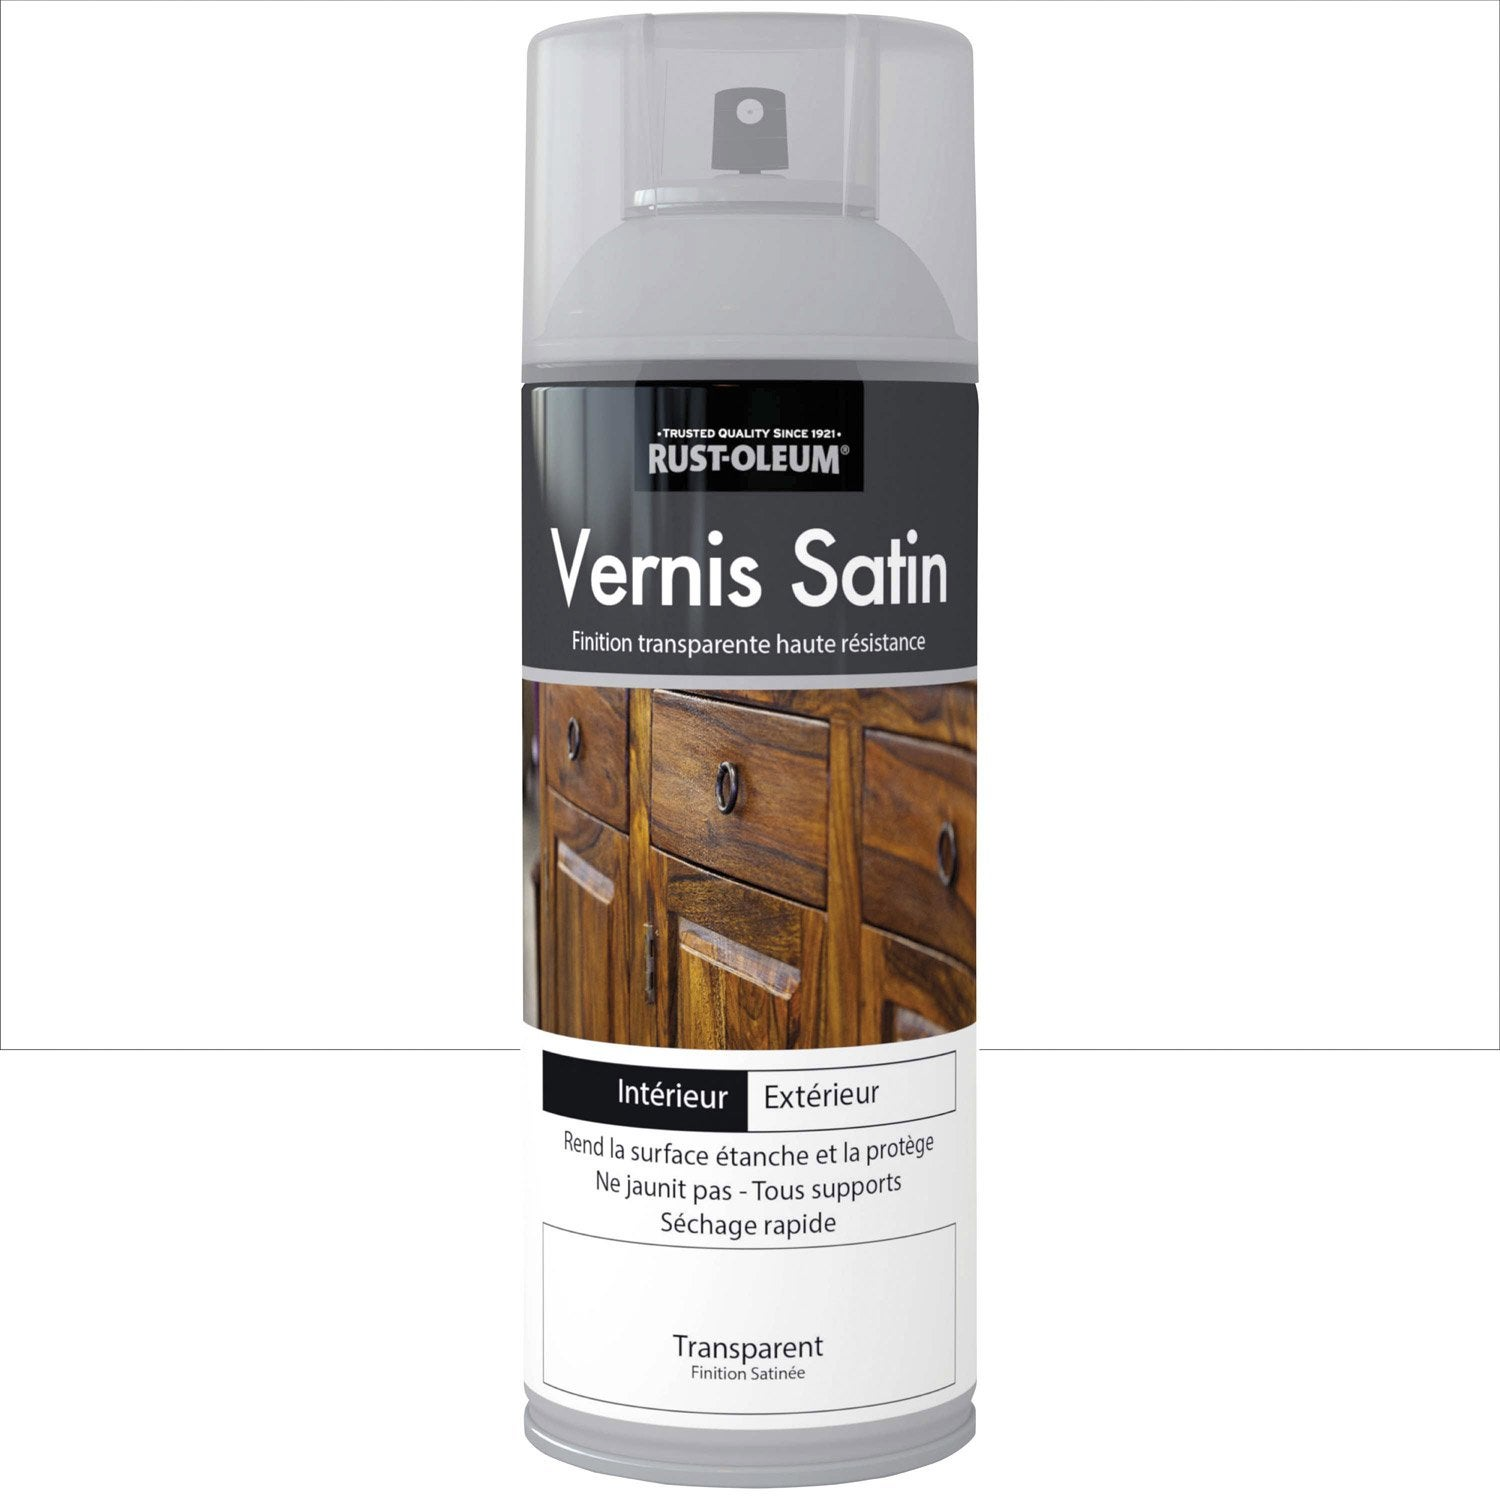 vernis en bombe a rosol satin rustoleum incolore 0 4 l. Black Bedroom Furniture Sets. Home Design Ideas